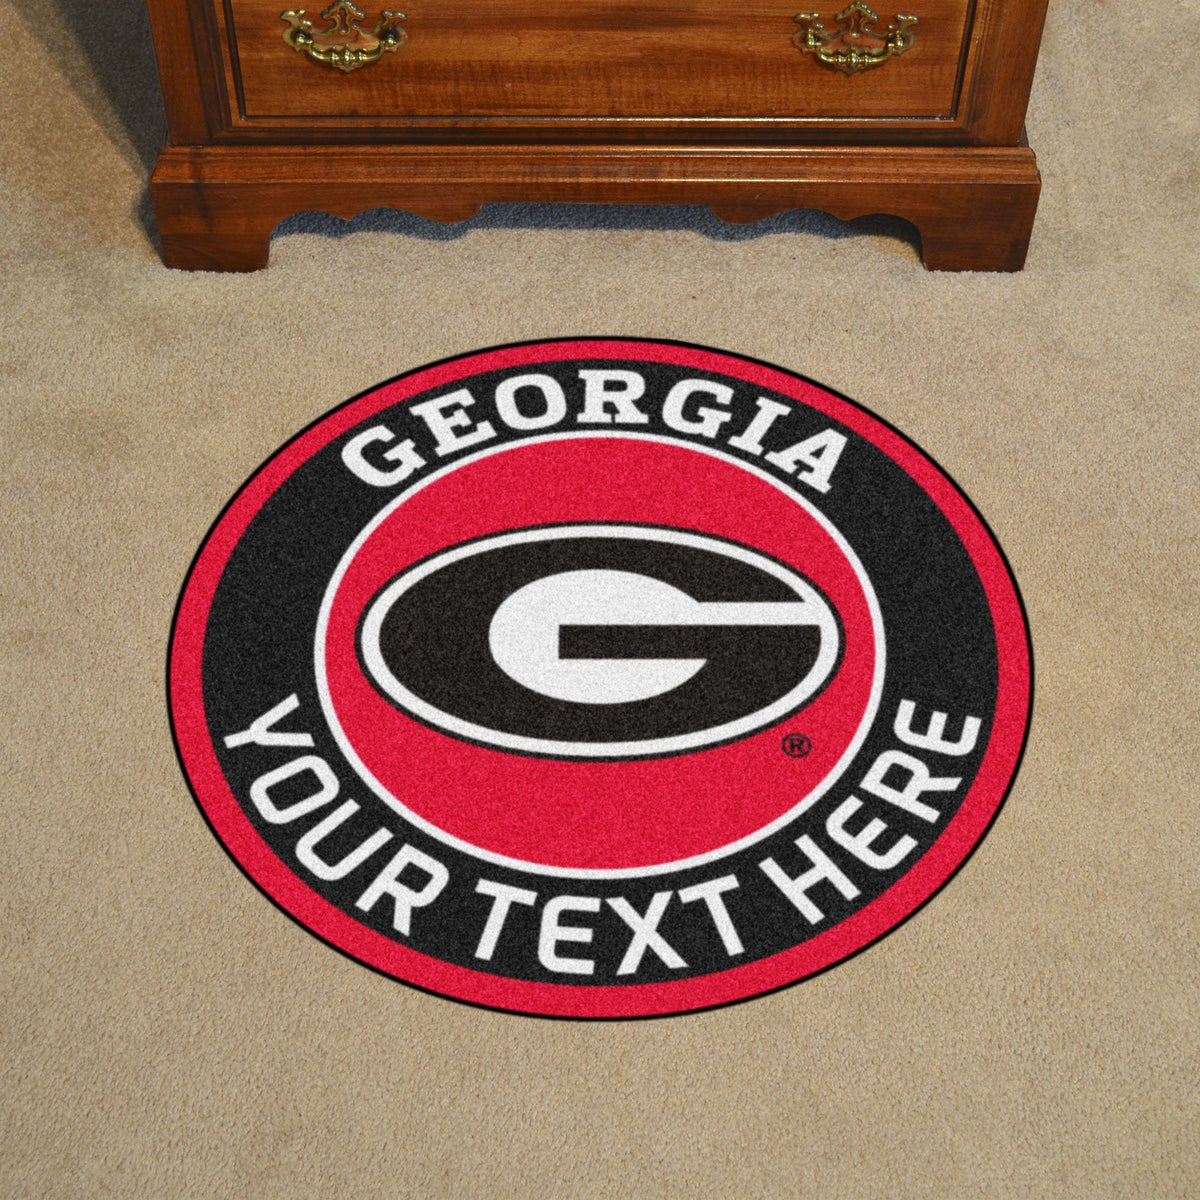 Collegiate Personalized Roundel Mat Personalized Roundel Mat Fan Mats University of Georgia